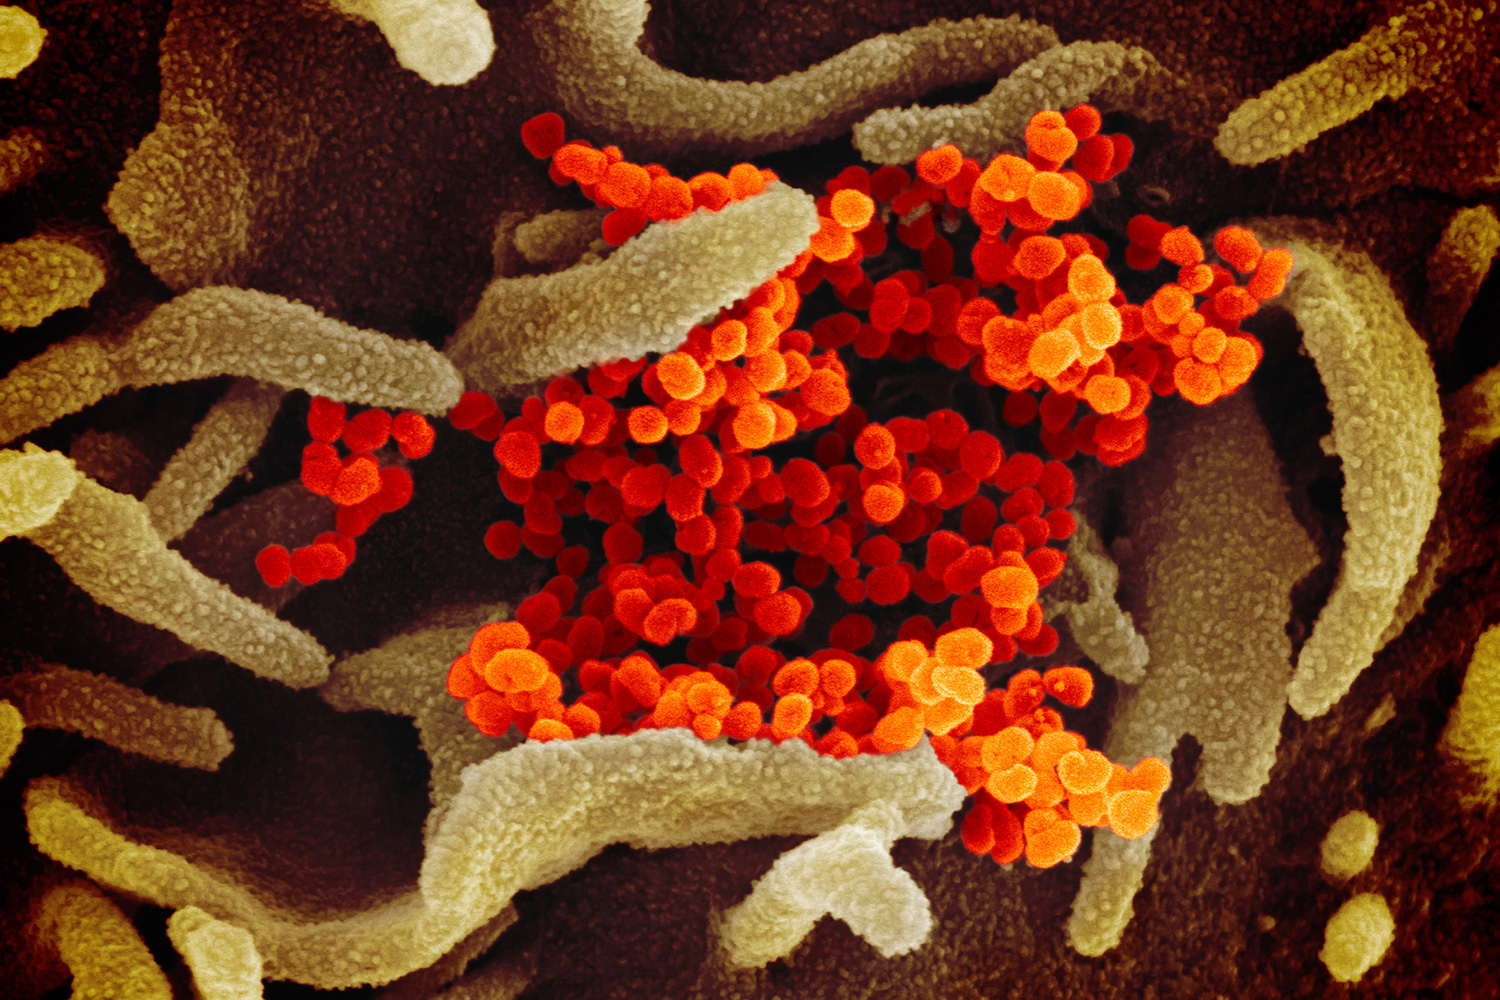 A colorized scanning electron microscope image of the novel coronavirus SARS-CoV-2, also known as 2019-nCoV, which causes COVID-19. Image shows a colorful molecular world with a bunch of worm-like dendrites, presumably biological material like cells, and bright orange cluster of spheres in the middle of the image. NIAID-RML image